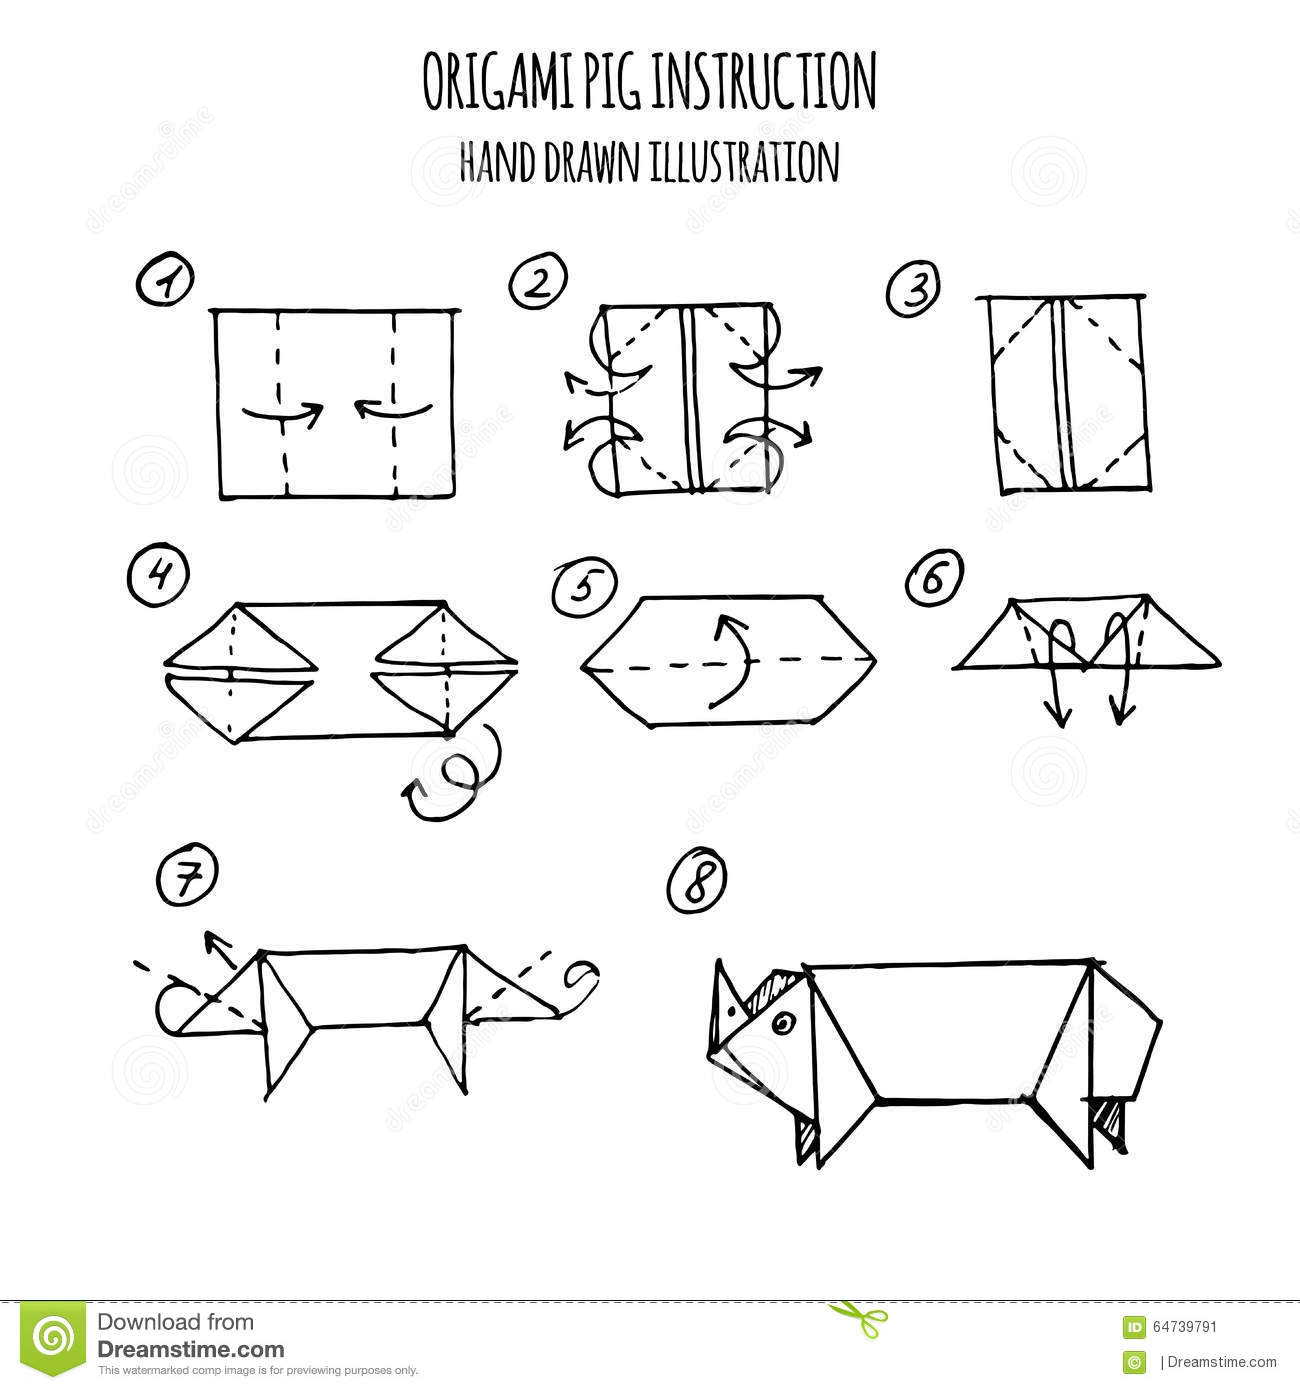 Hand Drawn Illustration Step By Step Of Pig Origami Stock ... - photo#32